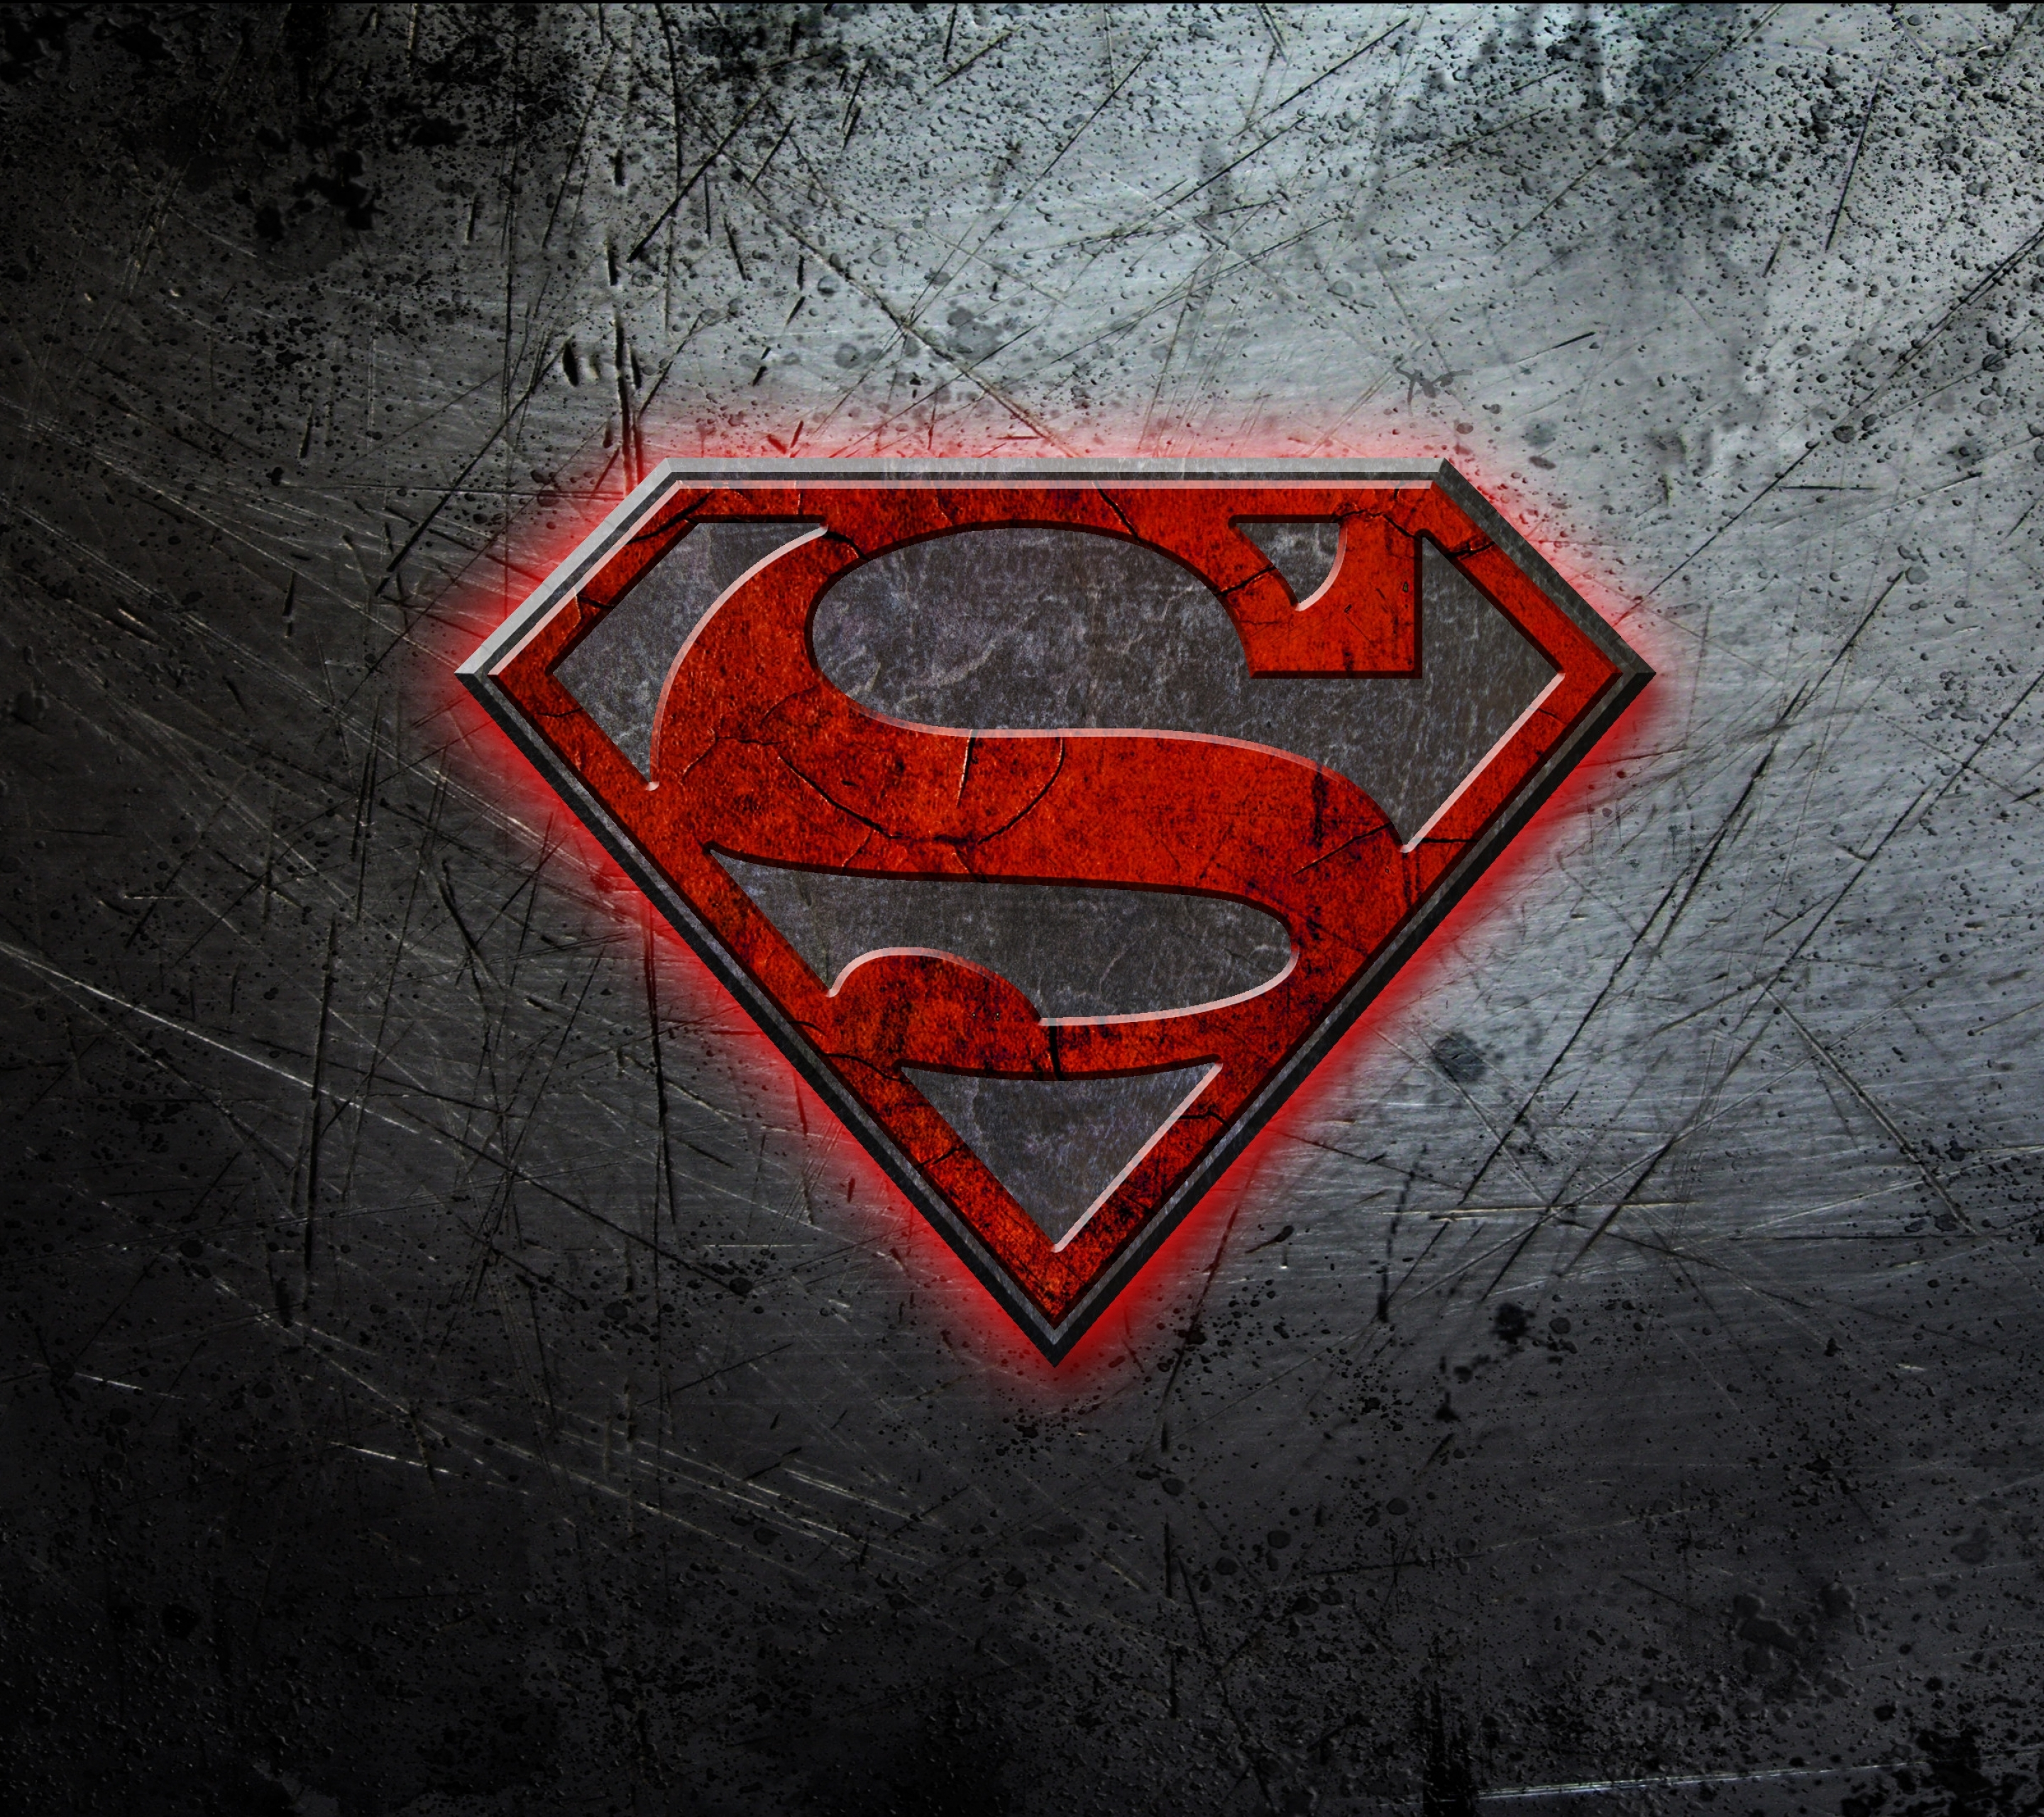 comics/superman (2880x2560) wallpaper id: 358539 - mobile abyss